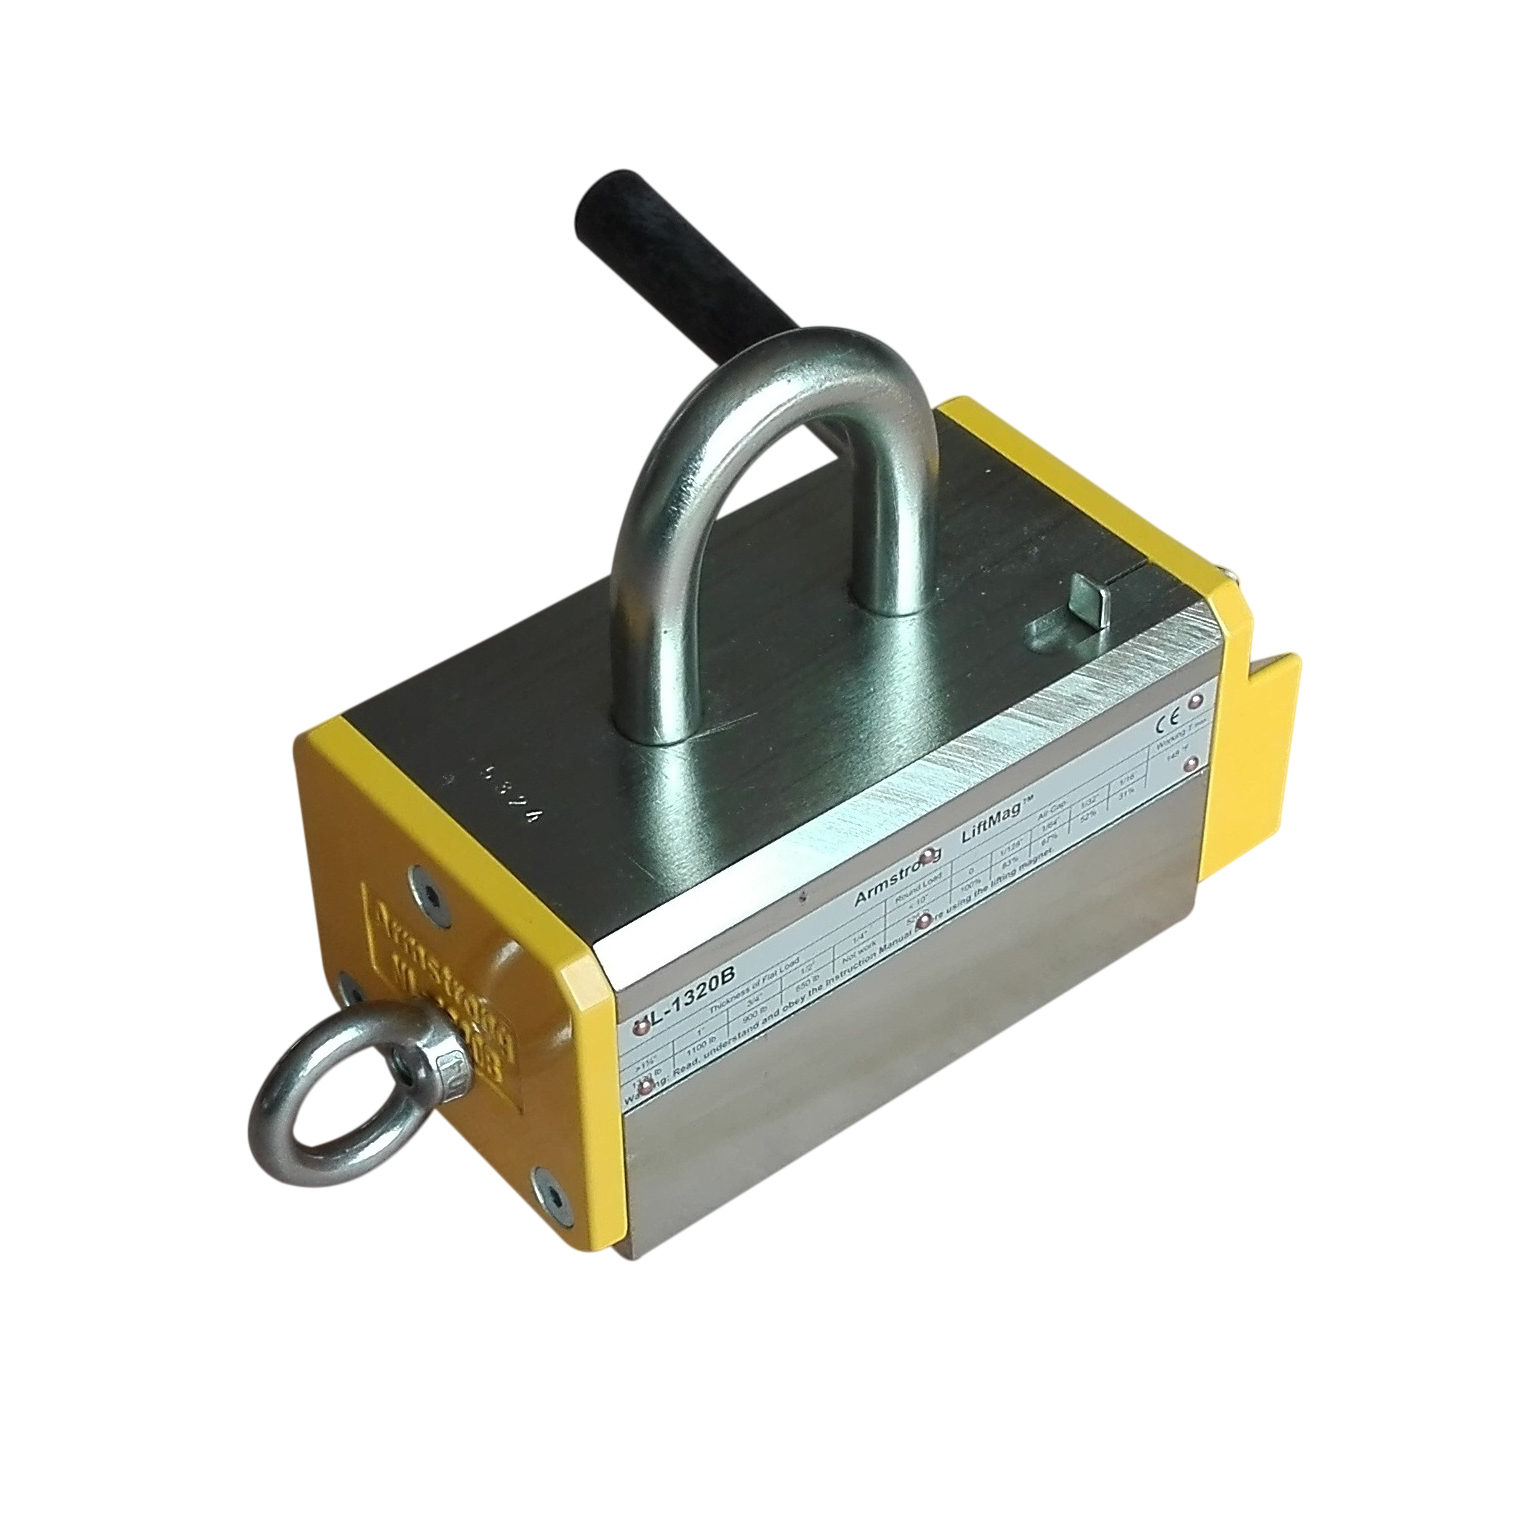 Armstrong Lifting Magnets NL-B series